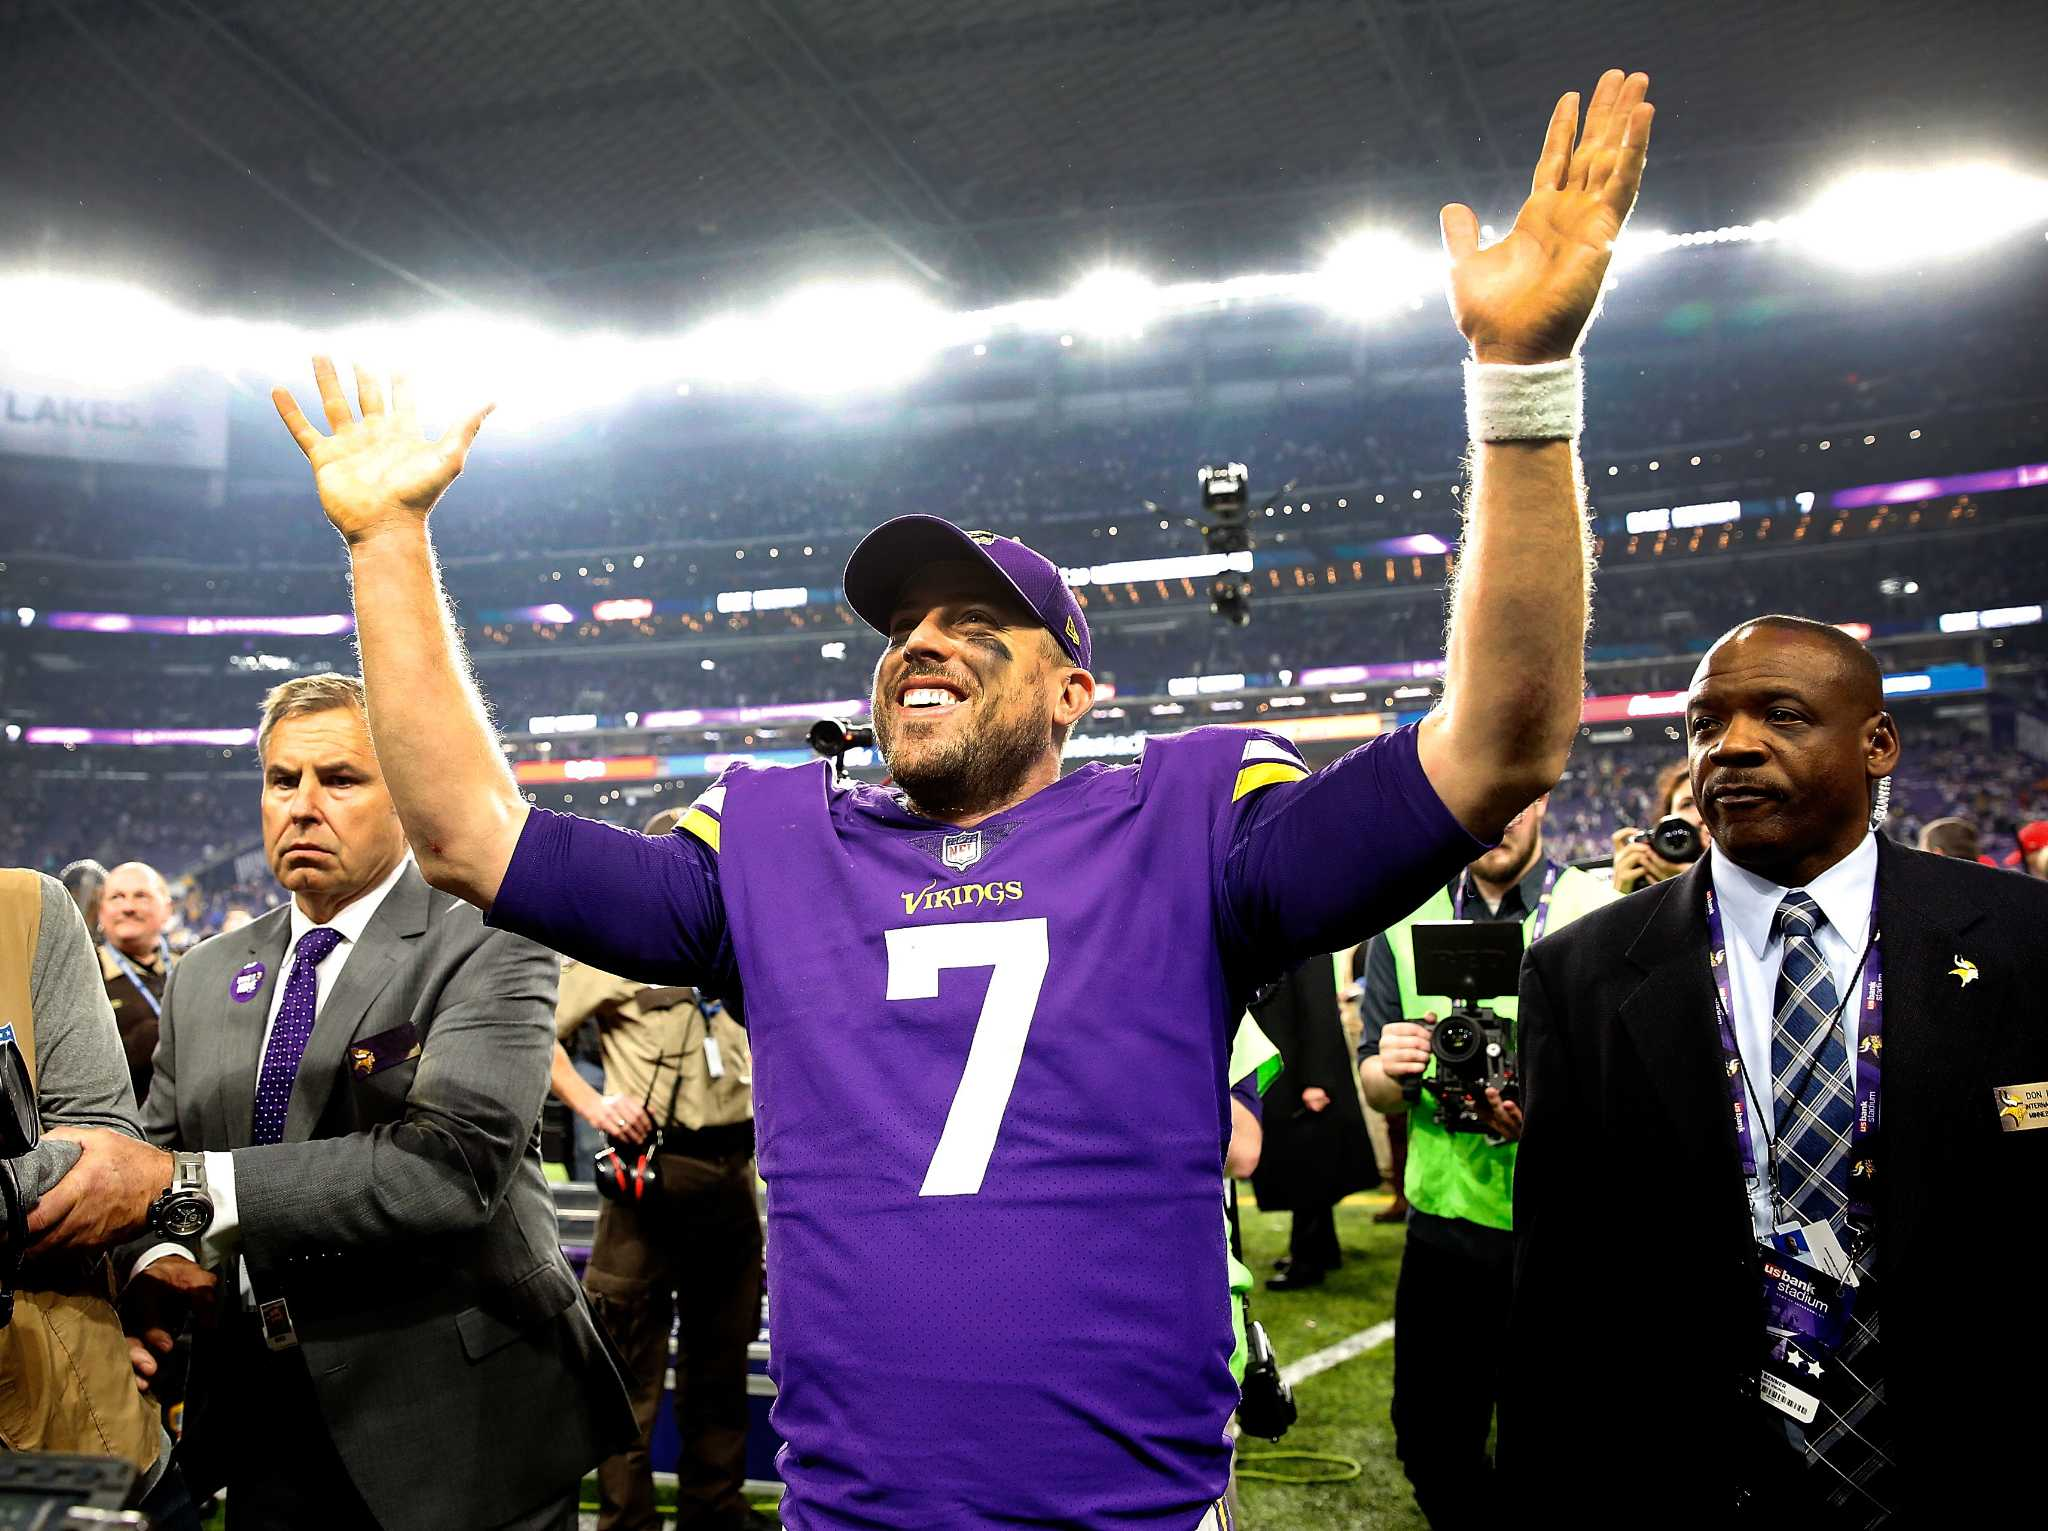 Report: Former UH star Case Keenum will sign with Broncos